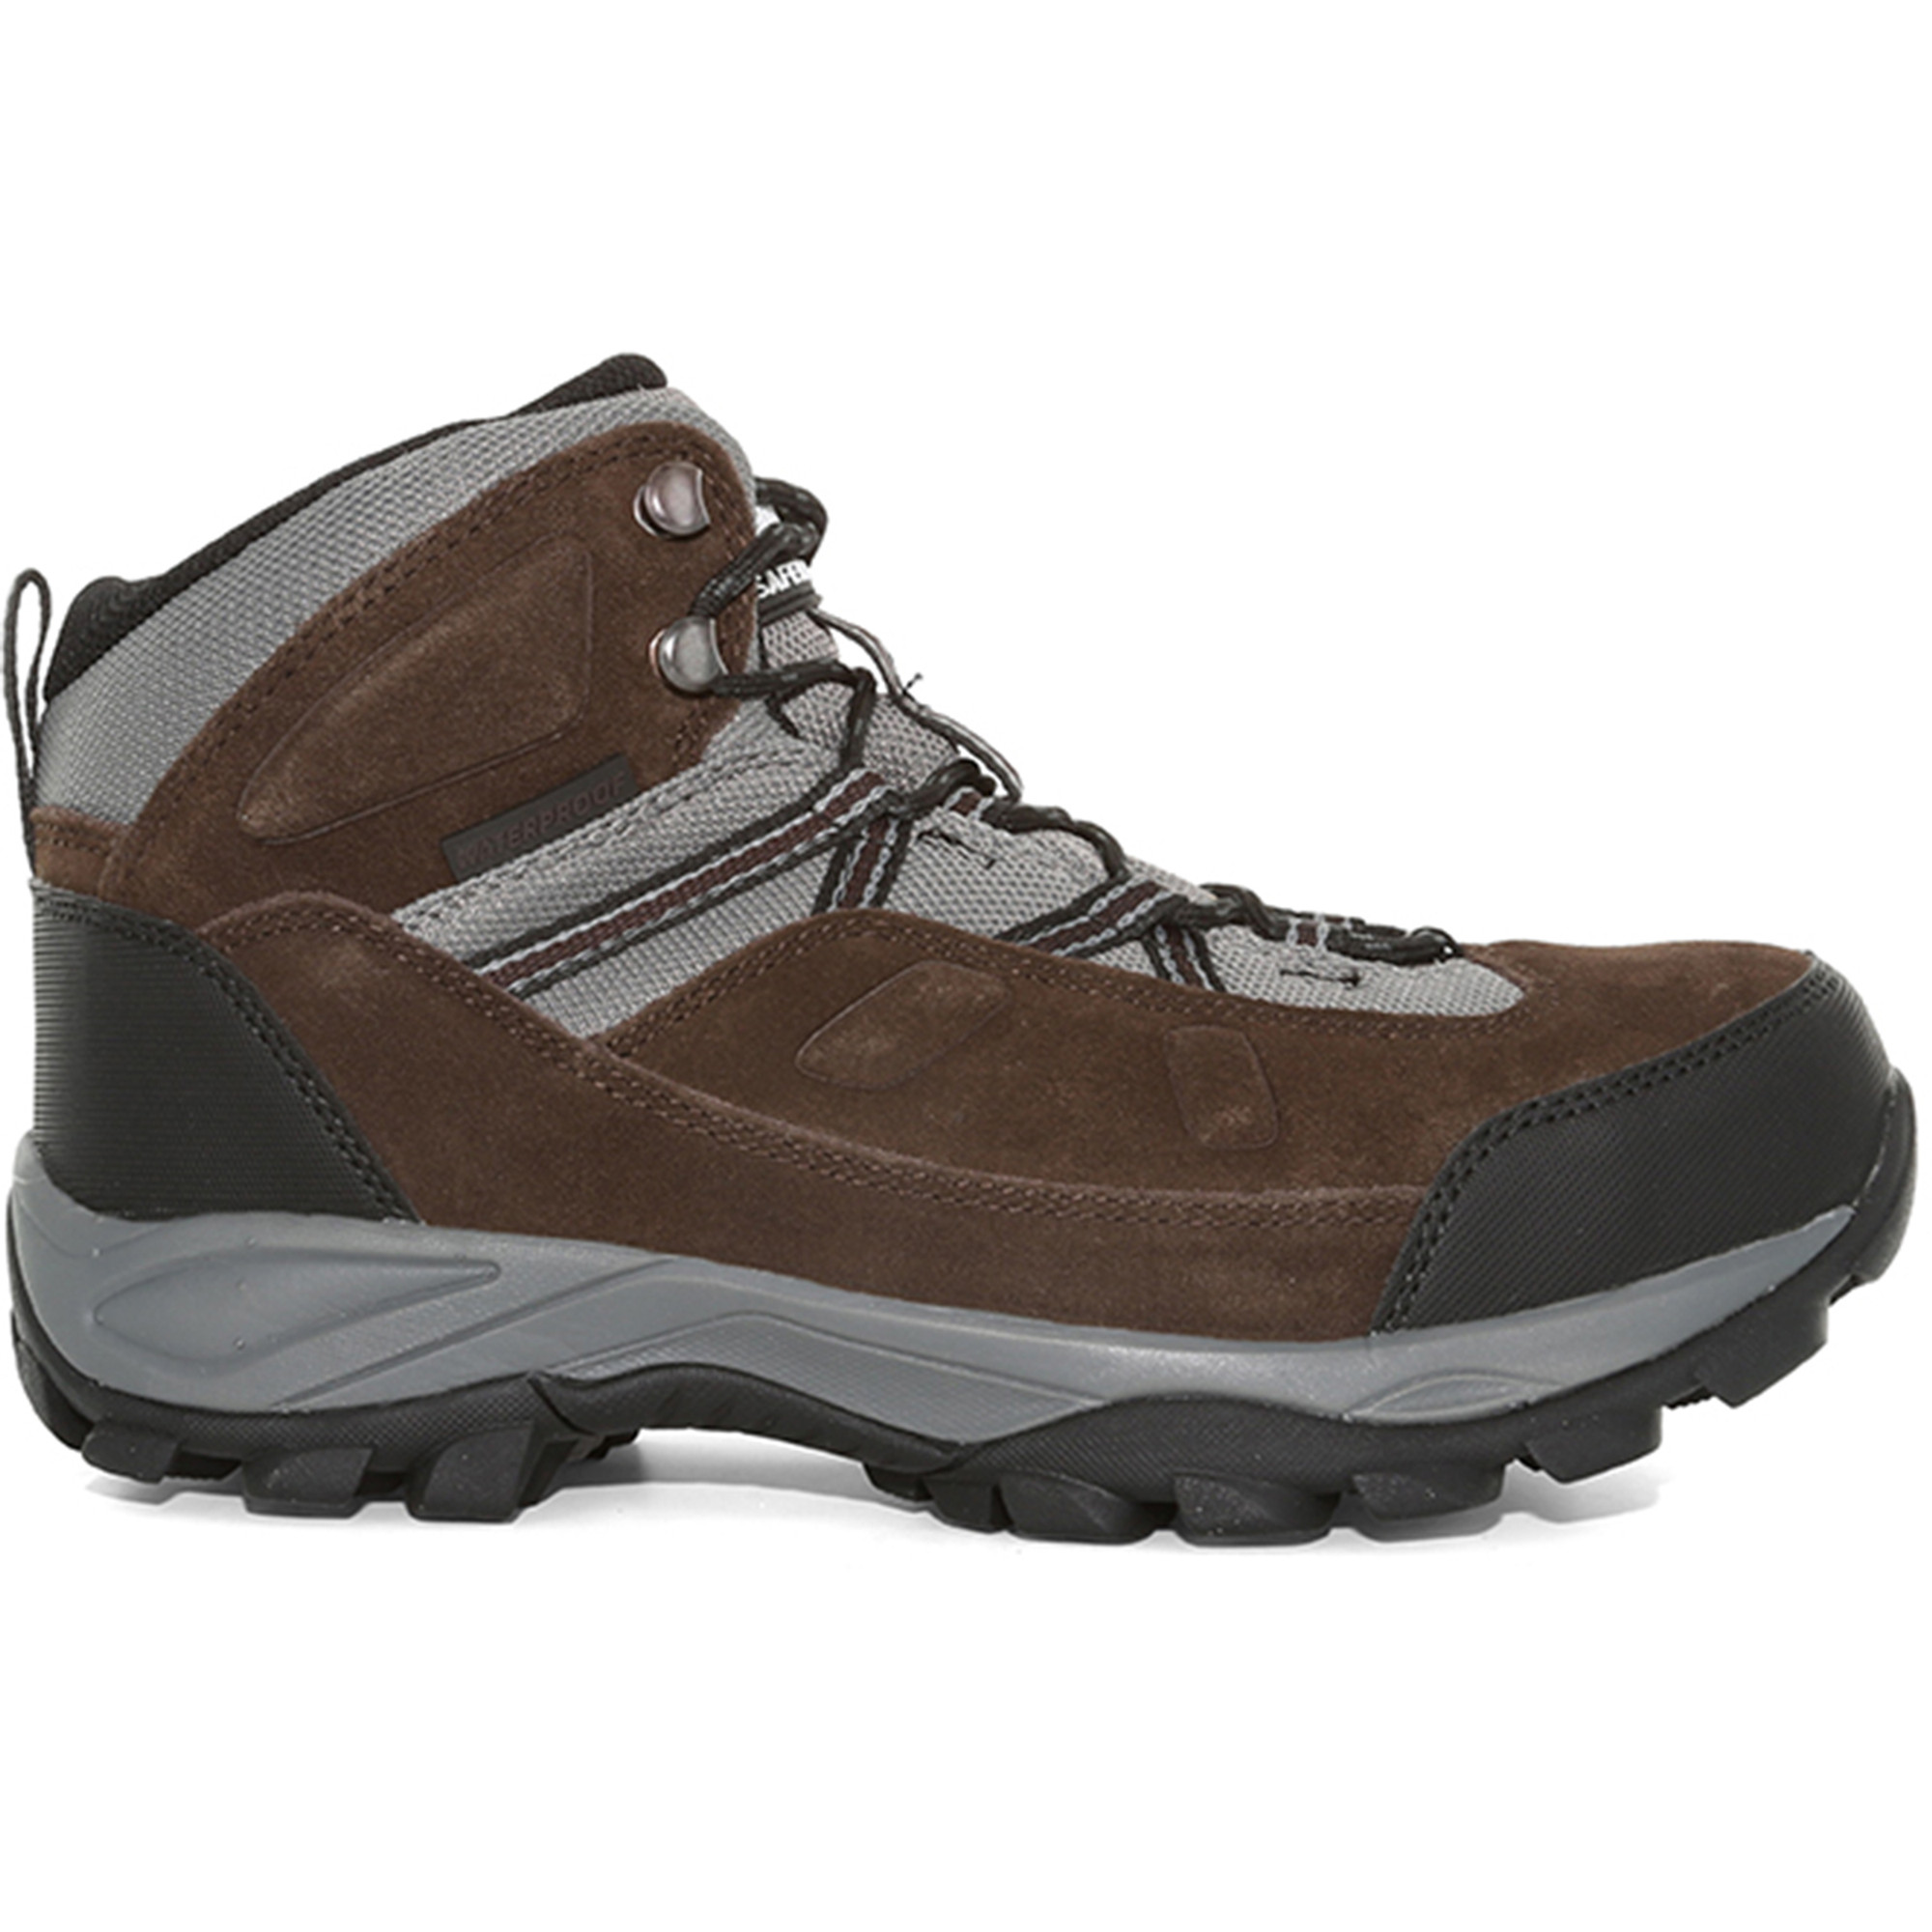 2e639c97b59 Magnum Men's Bridgeport Waterproof Steel Toe Boots, Chocolate / Charcoal